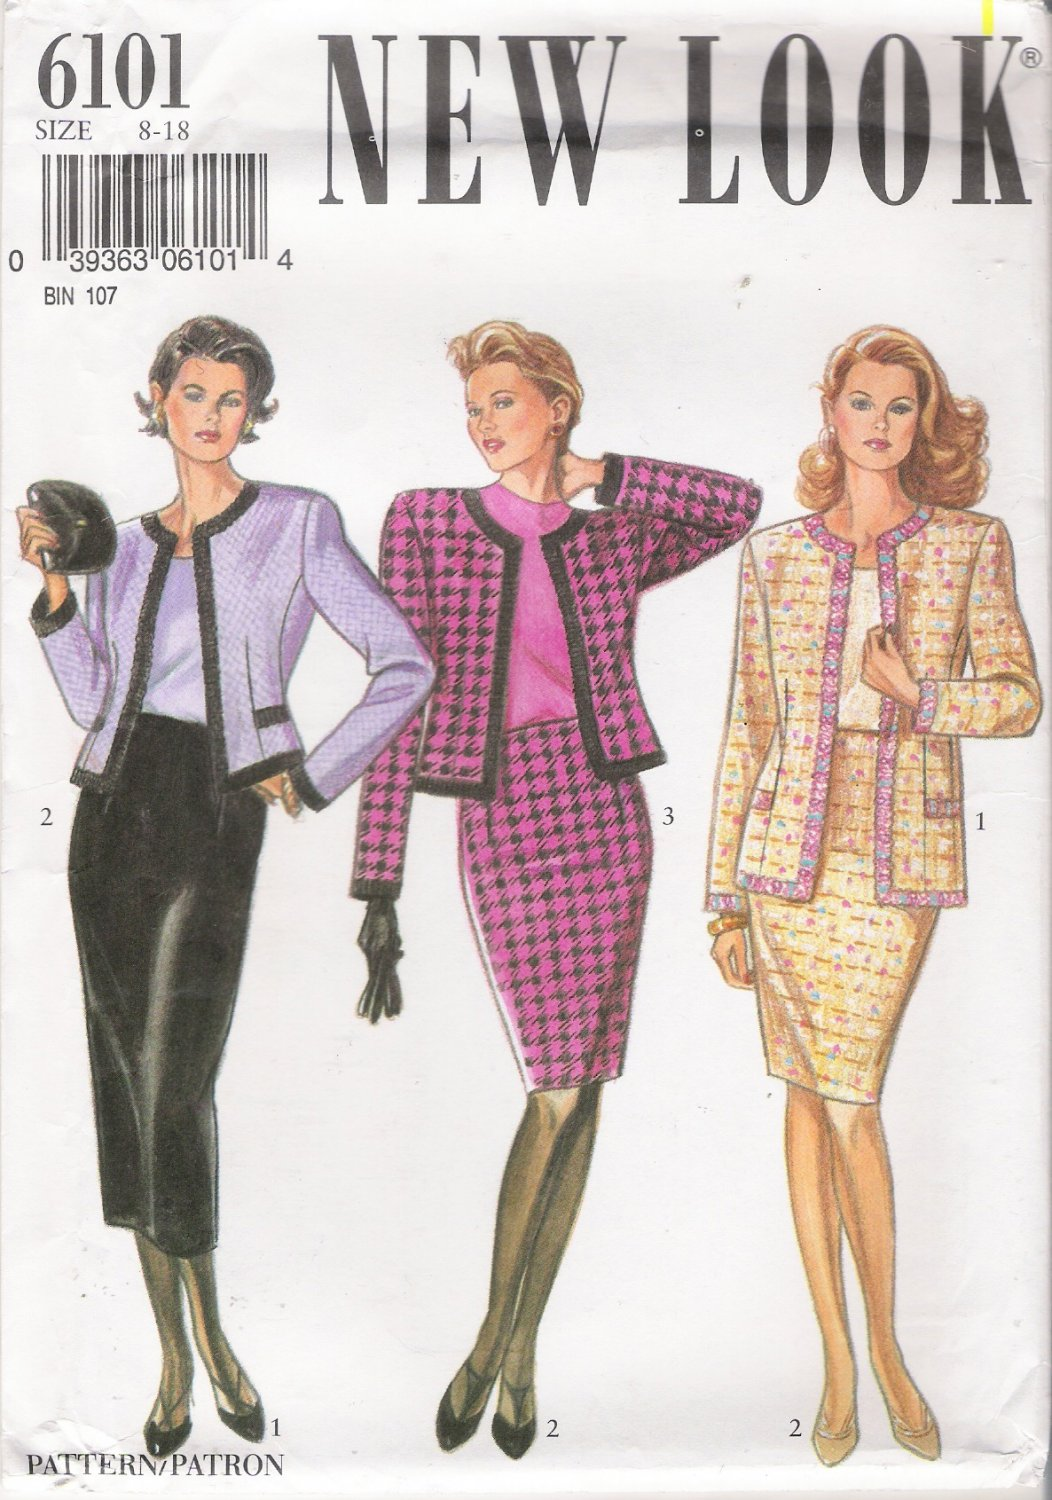 Misses' Jacket & Skirt Sewing Pattern Size 8-18 Simplicity New Look 6101 UNCUT